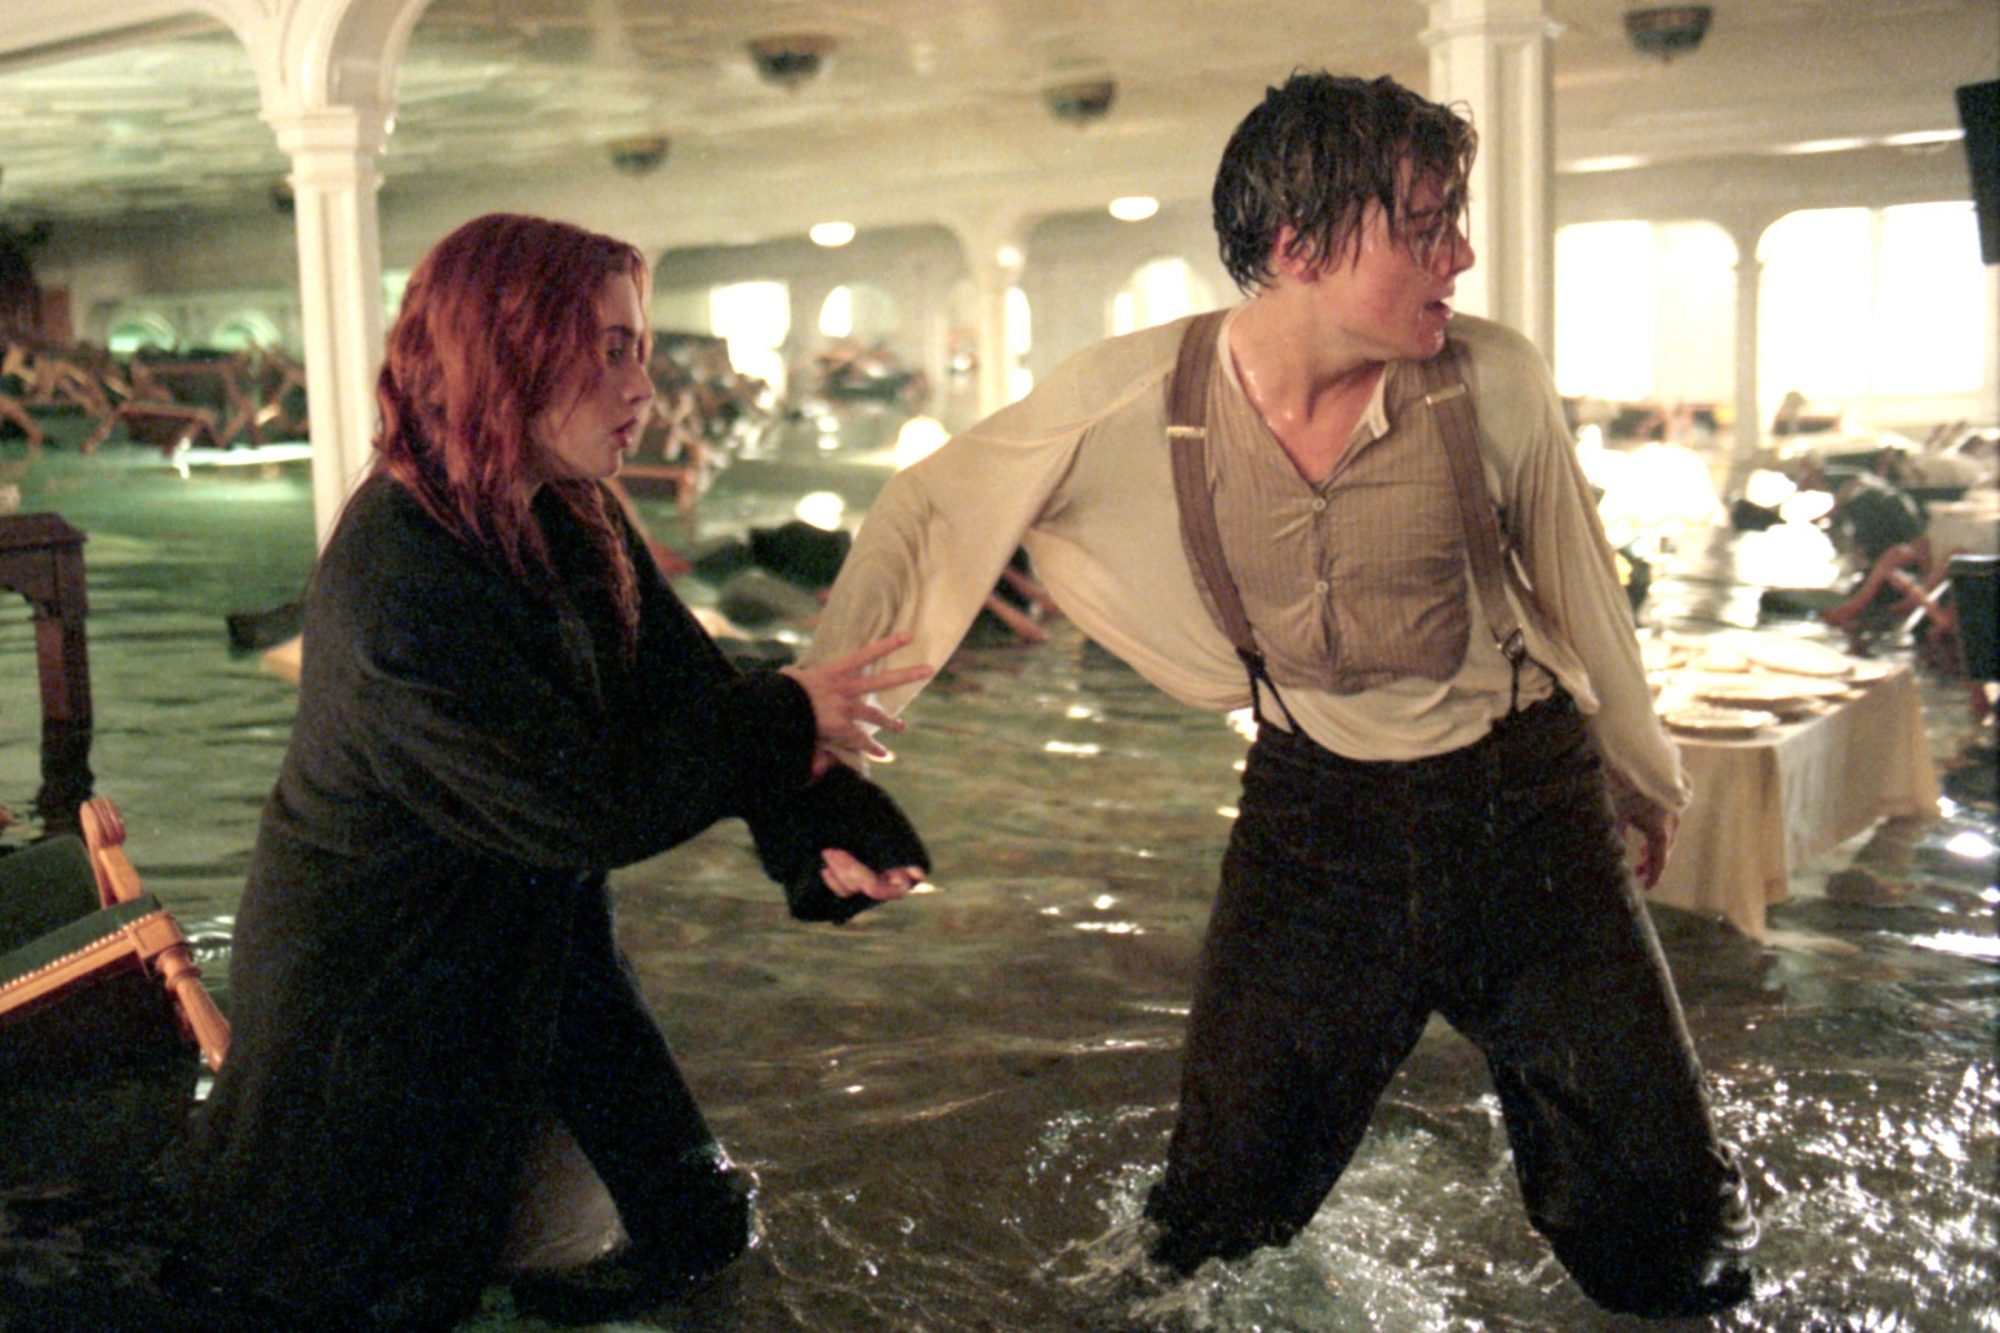 TITANIC, from left: Kate Winslet, Leonardo DiCaprio, 1997. ph: Merie Weismiller Wallace/TM & Copyrig